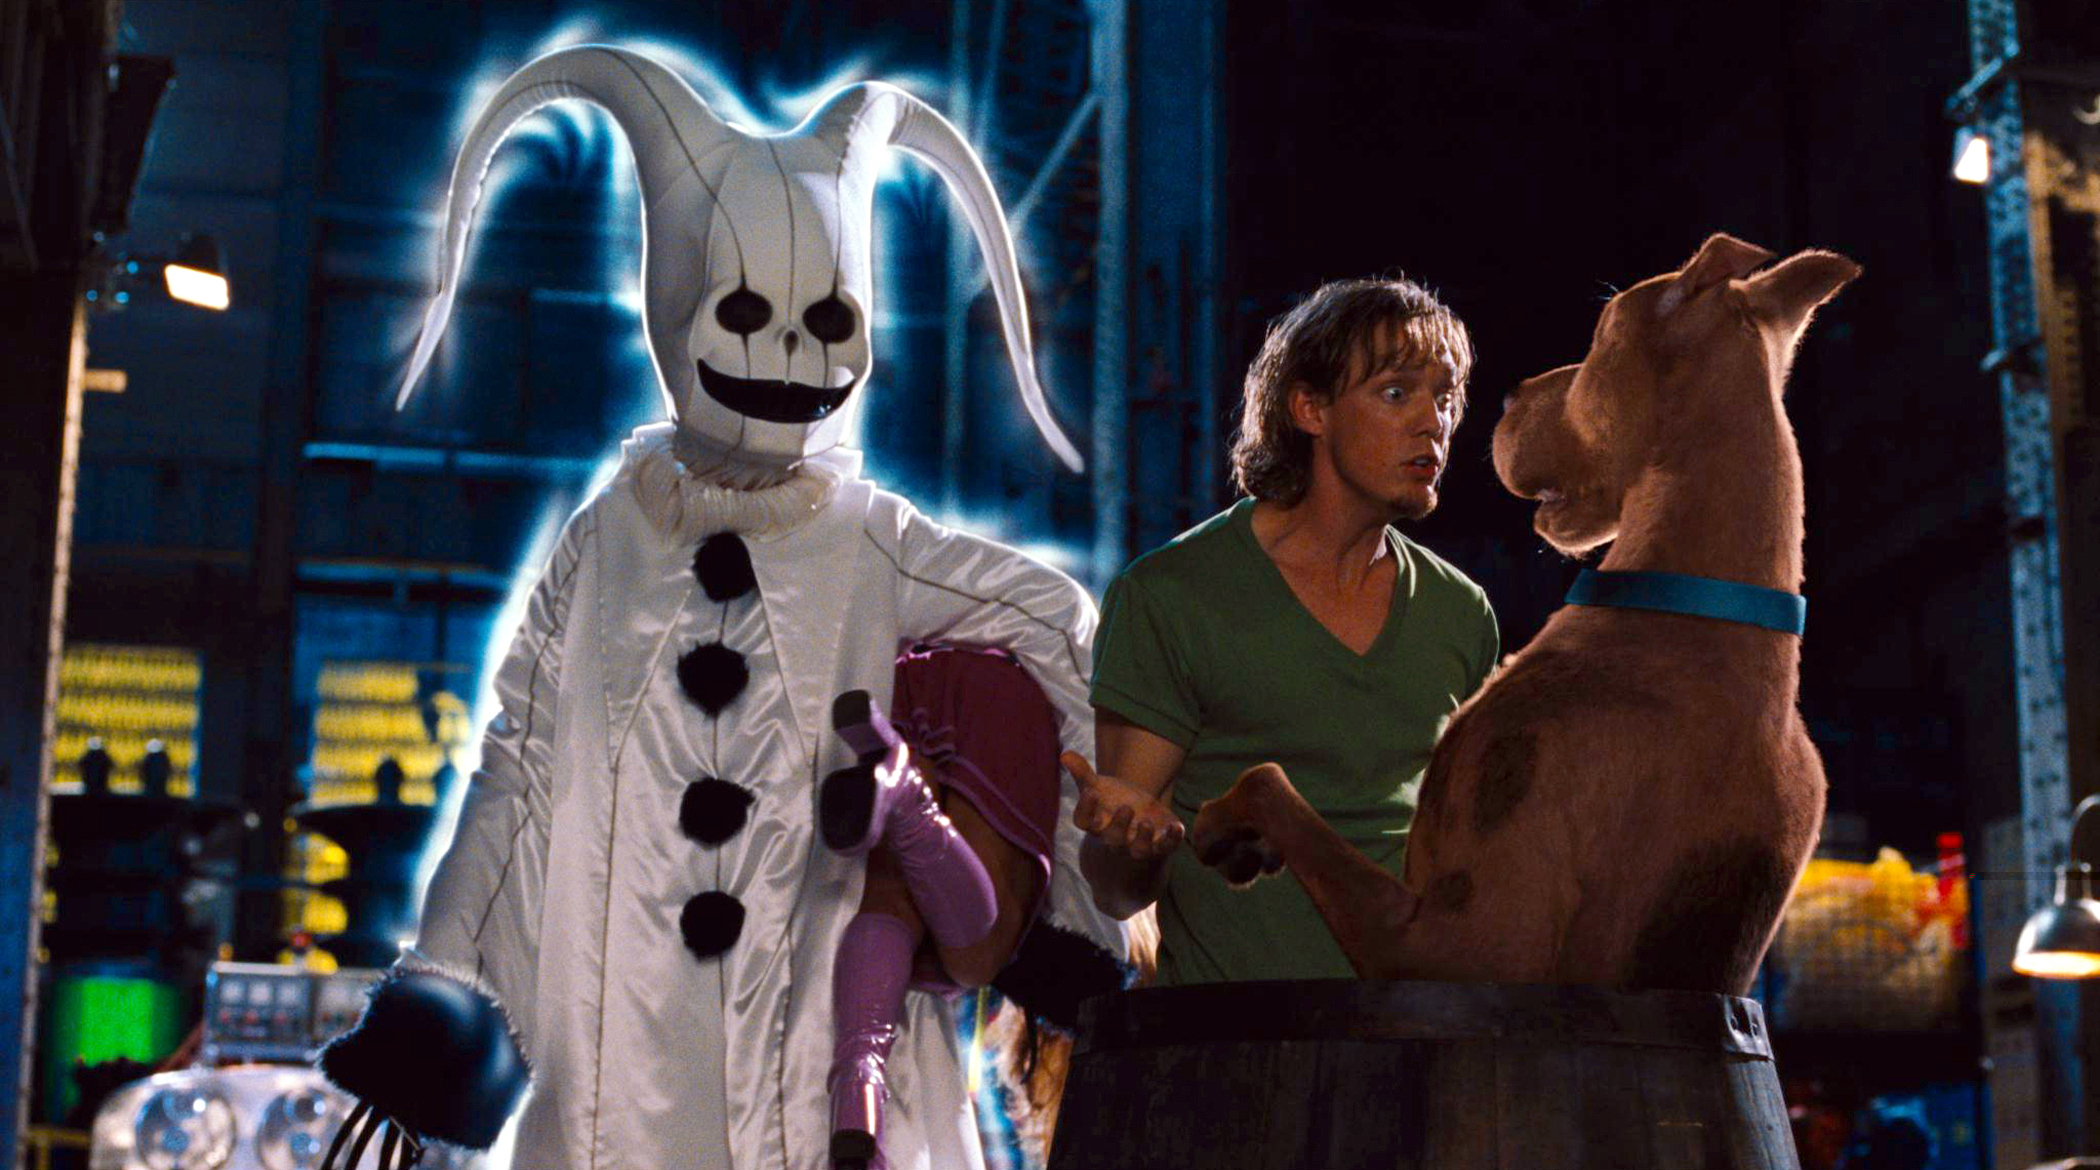 Scooby doo movies photo 8686360 fanpop - Scoobidou film ...